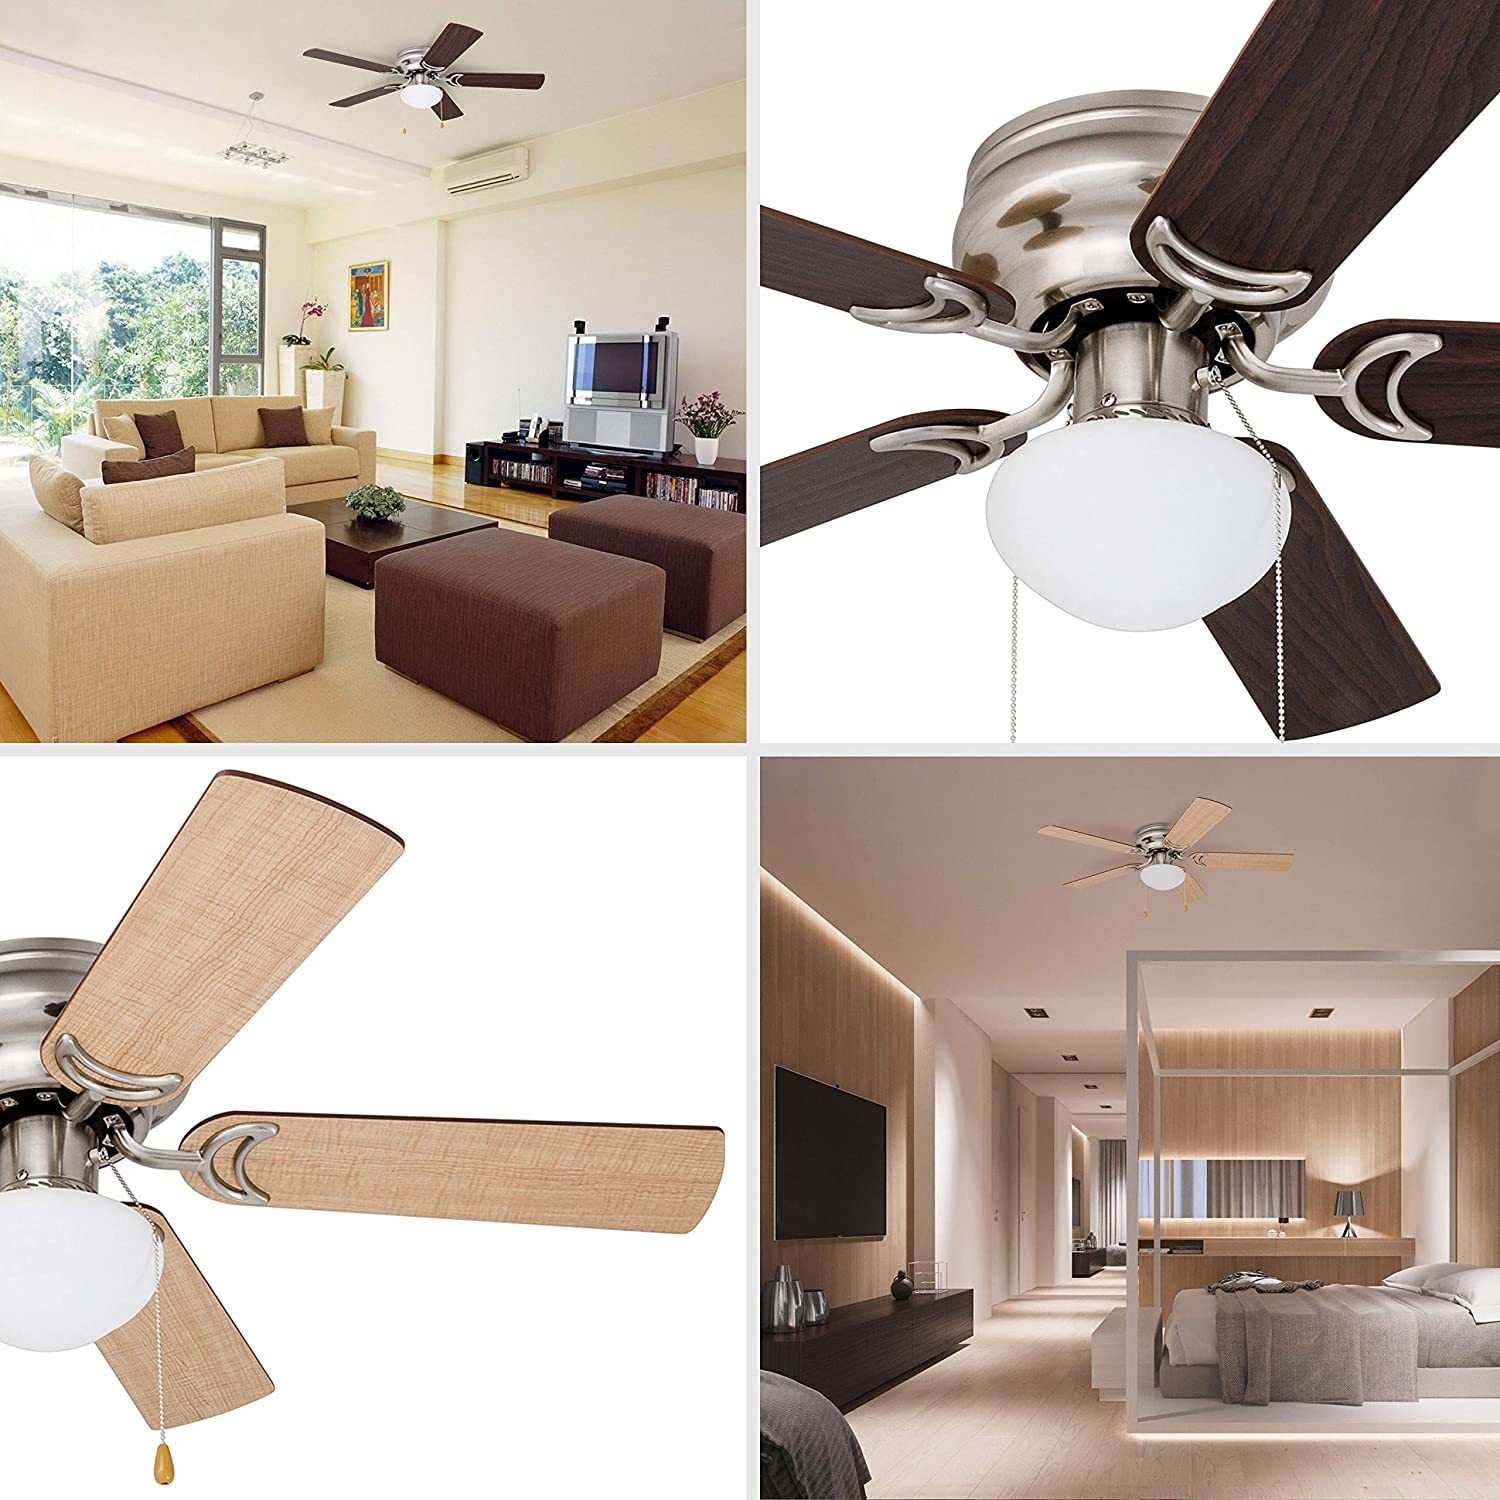 Prominence Home 80029-01 Alvina Led Globe Light Hugger Low Profile Ceiling Fan, 42 inches, Satin Nickel